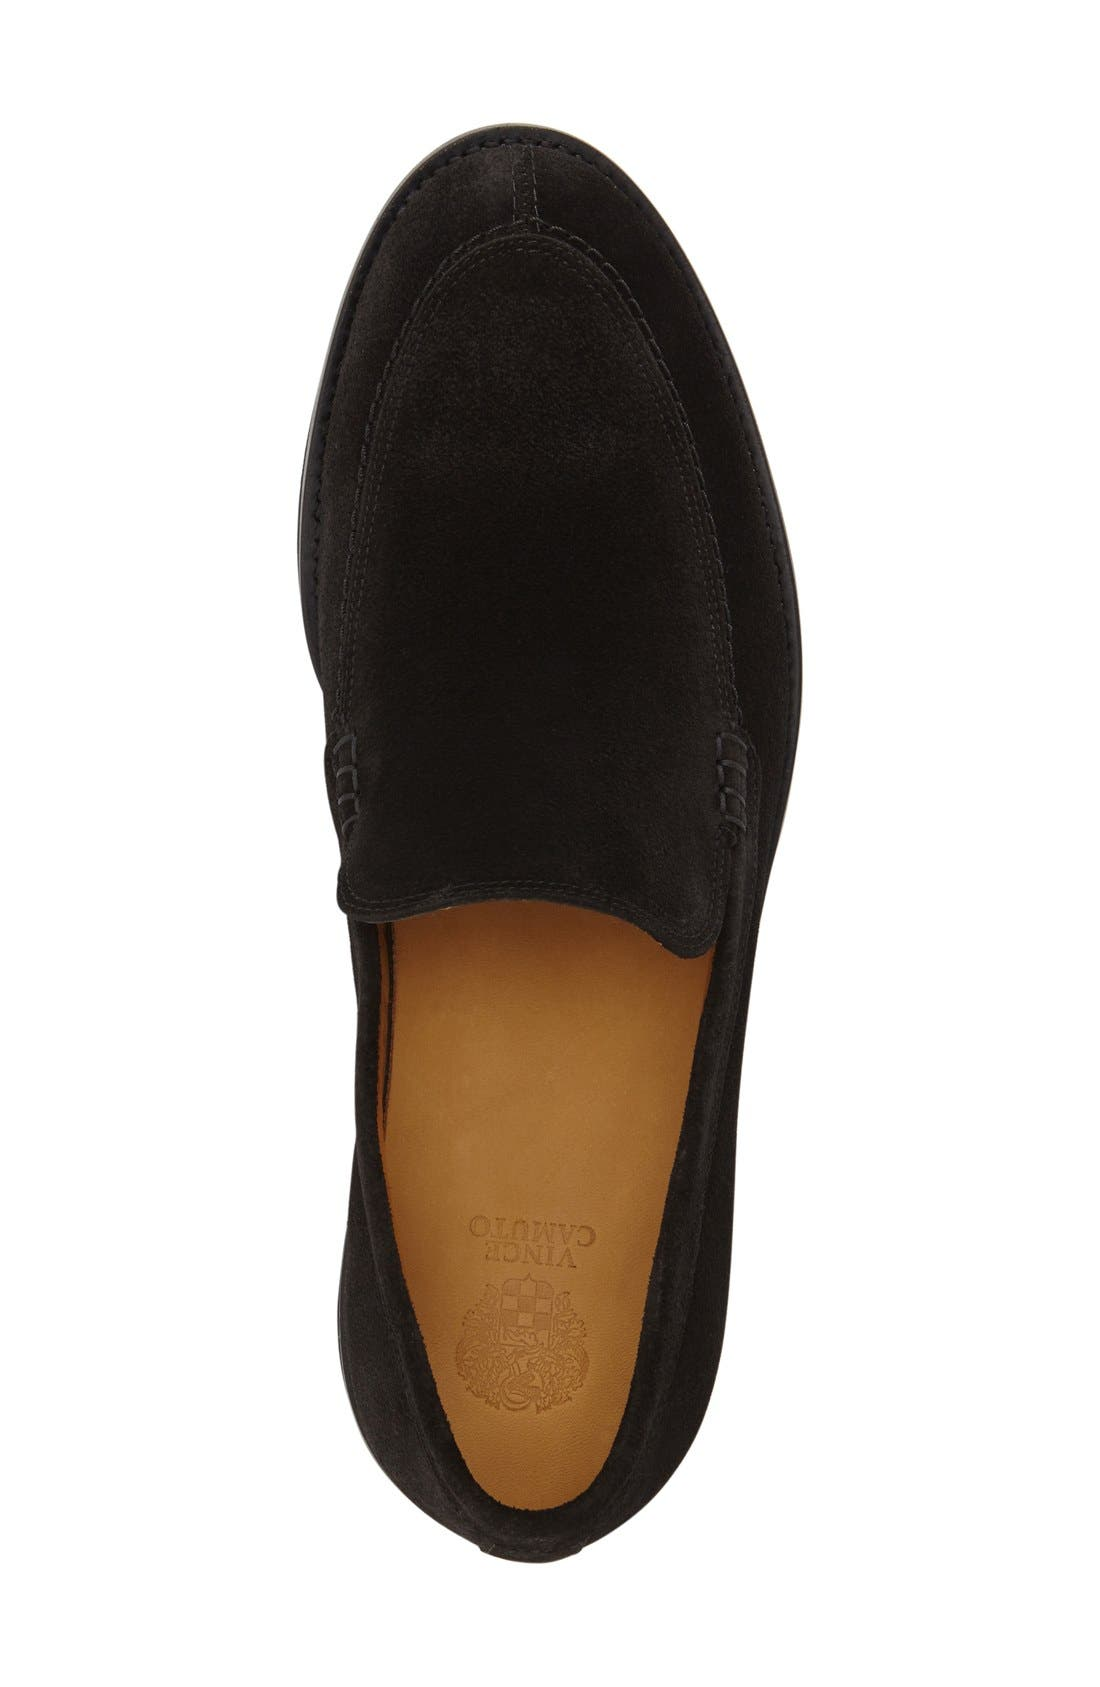 'Arleigh' Loafer,                             Alternate thumbnail 4, color,                             Black Suede